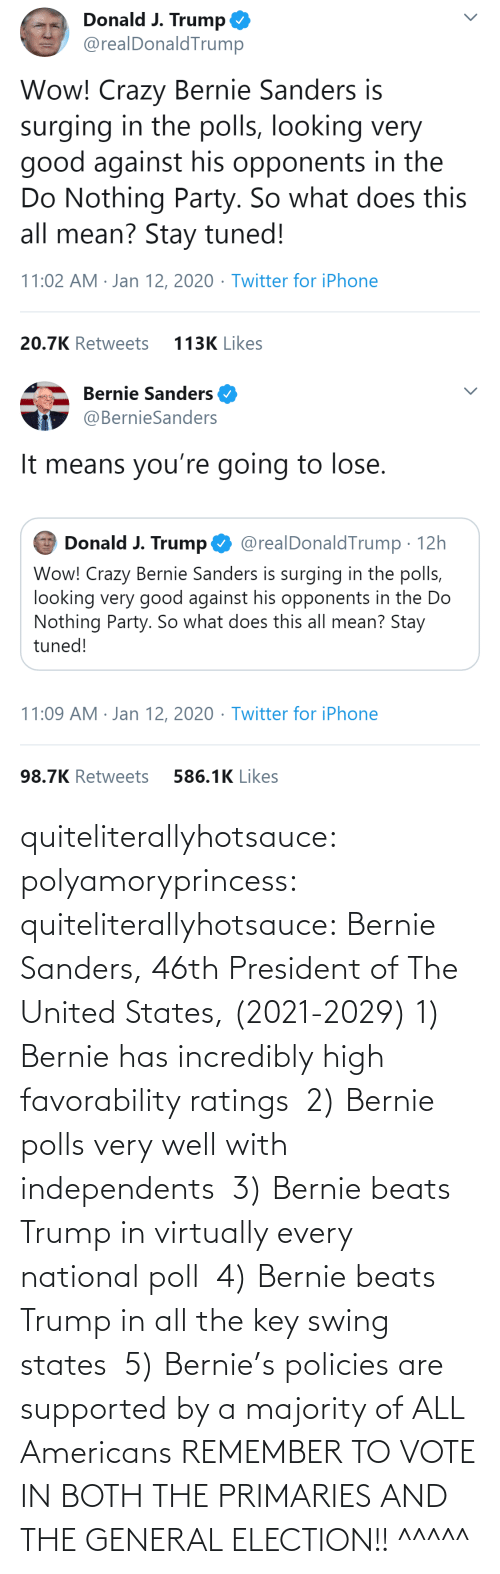 states: quiteliterallyhotsauce:  polyamoryprincess:  quiteliterallyhotsauce:   Bernie Sanders, 46th President of The United States, (2021-2029)    1) Bernie has incredibly high favorability ratings  2) Bernie polls very well with independents  3) Bernie beats Trump in virtually every national poll  4) Bernie beats Trump in all the key swing states  5) Bernie's policies are supported by a majority of ALL Americans    REMEMBER TO VOTE IN BOTH THE PRIMARIES AND THE GENERAL ELECTION!!  ^^^^^